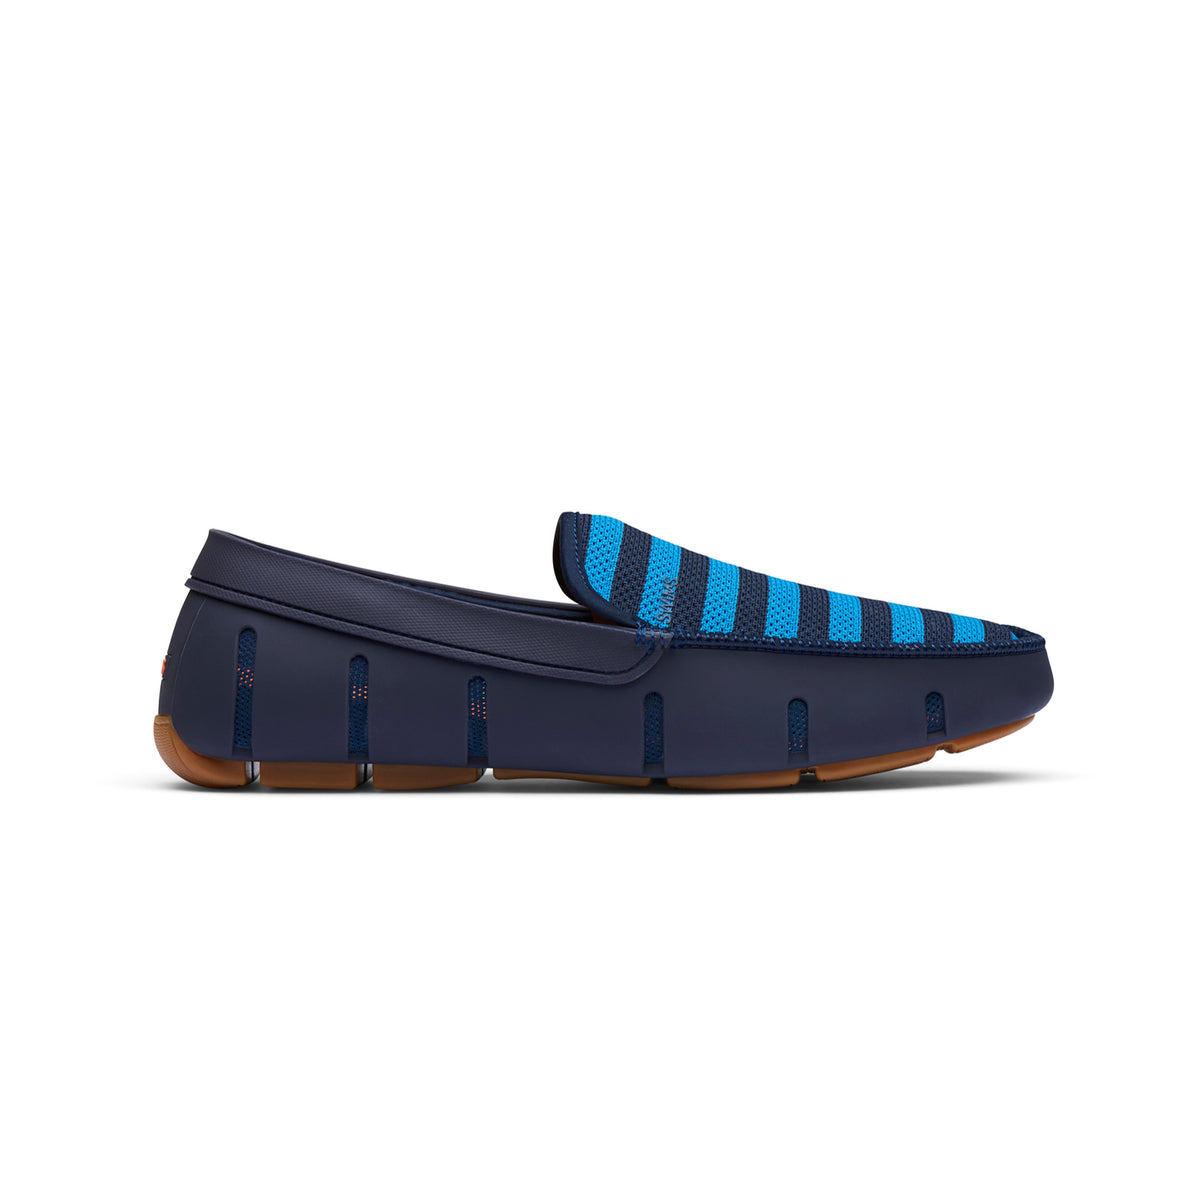 Striped Venetian Loafer - background::white,variant::Navy/Turkish Tile/ Gum